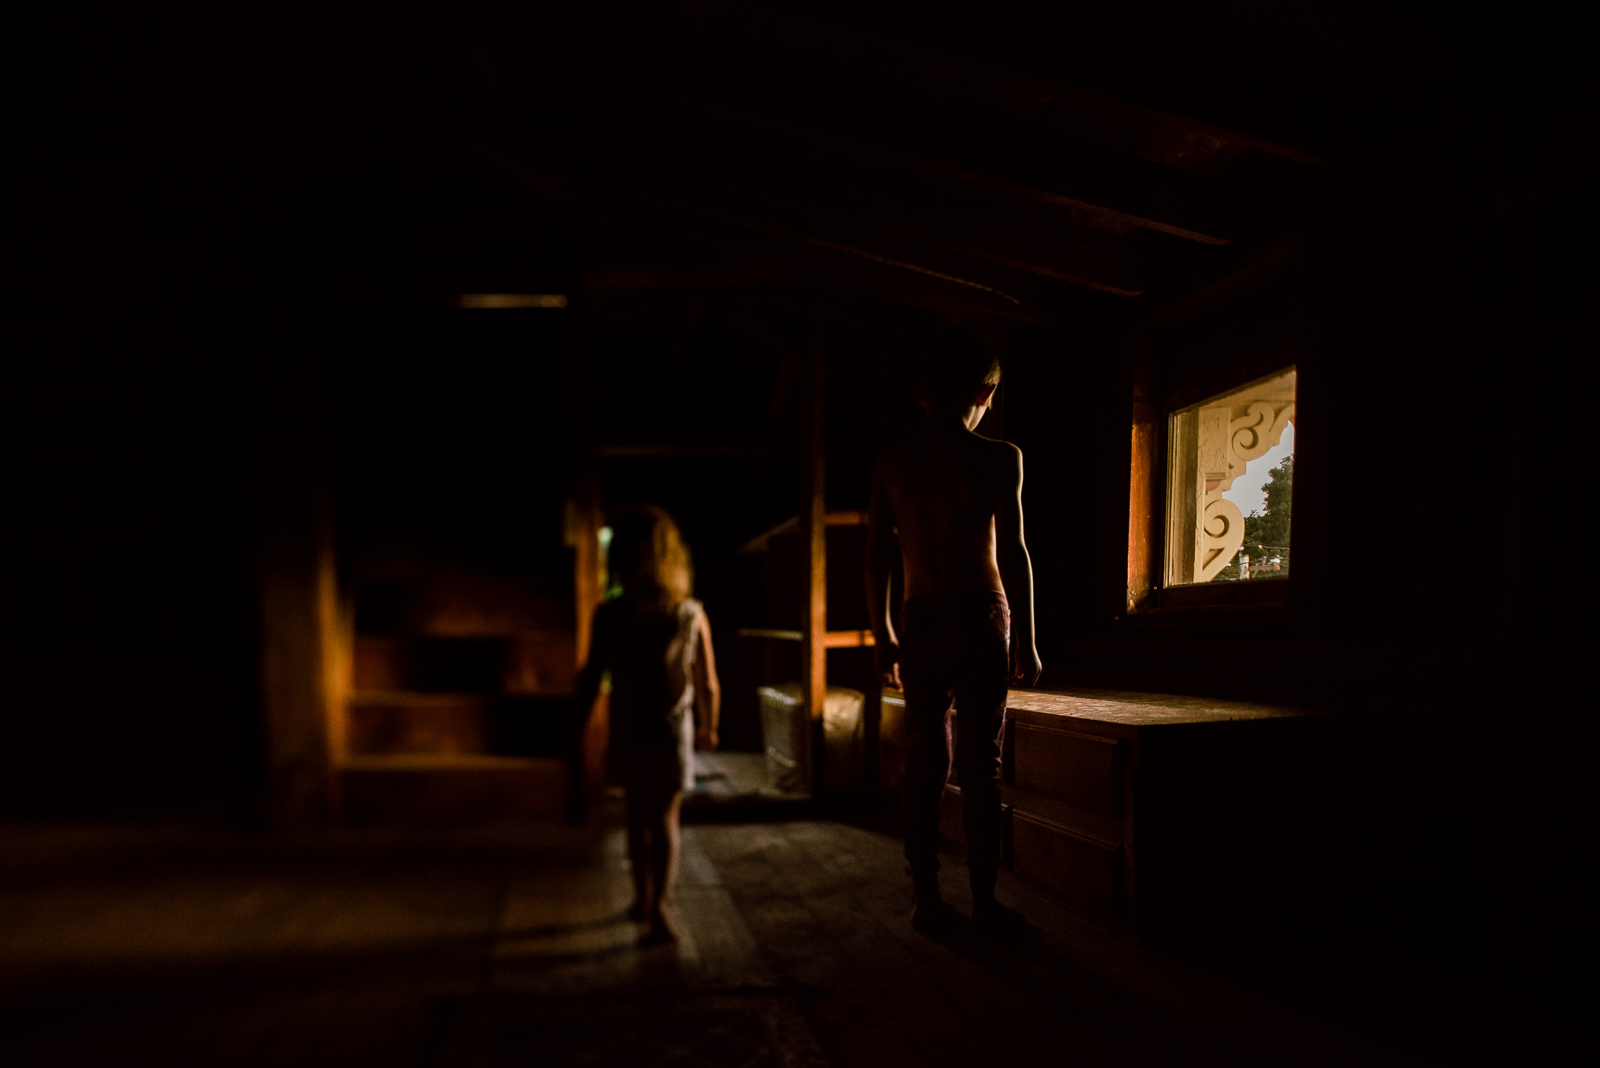 spooky-photo-with-moody-atmosphere-for-halloween-by-sarah-wilkerson-8235